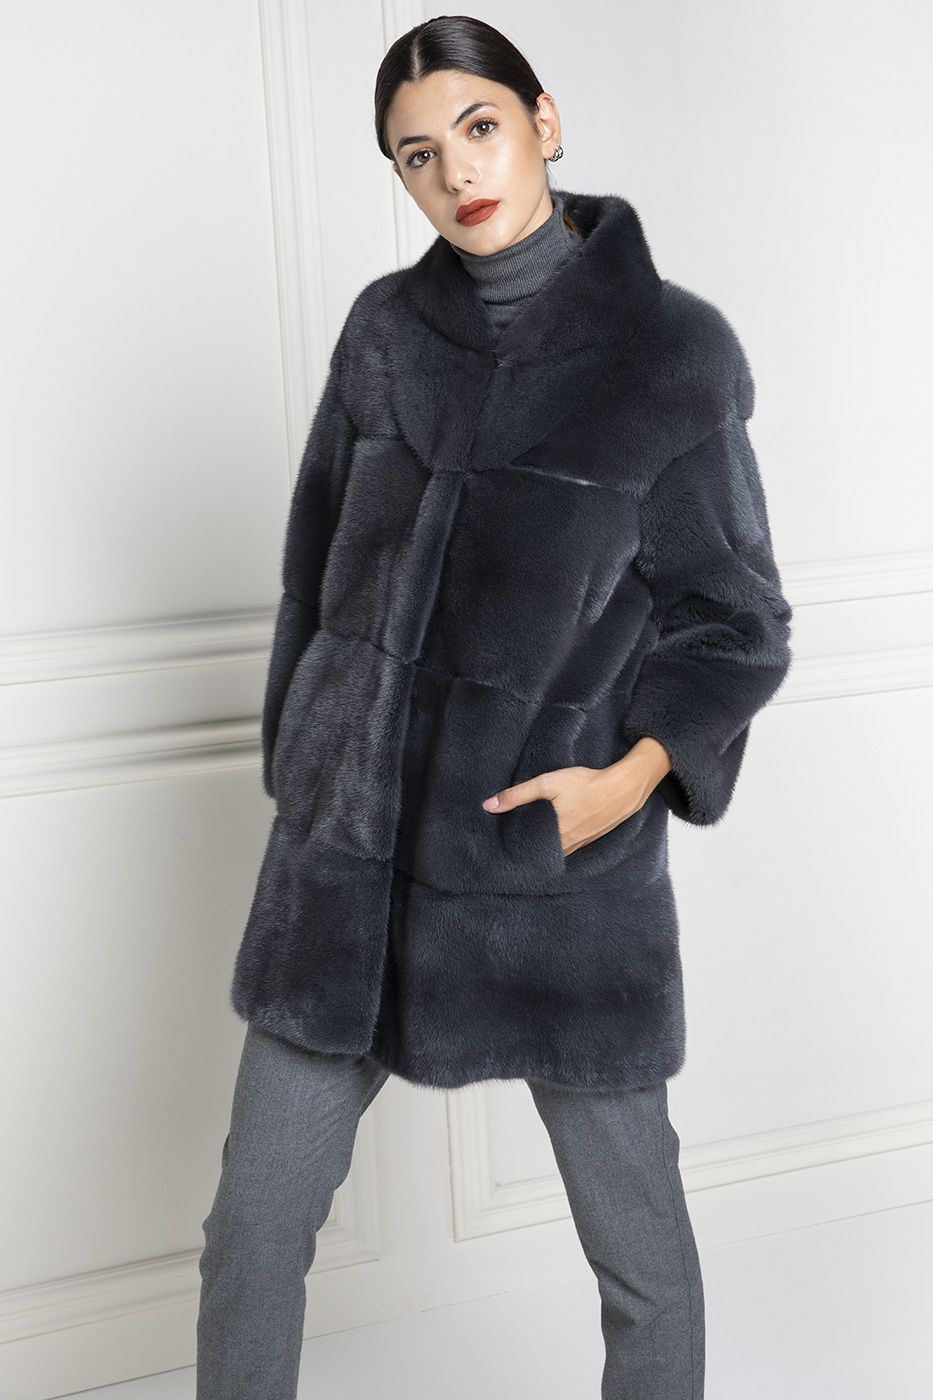 Grey Mink Coat - Length 85 cm - Elpidio Loffredo Furs  0a0276cc129